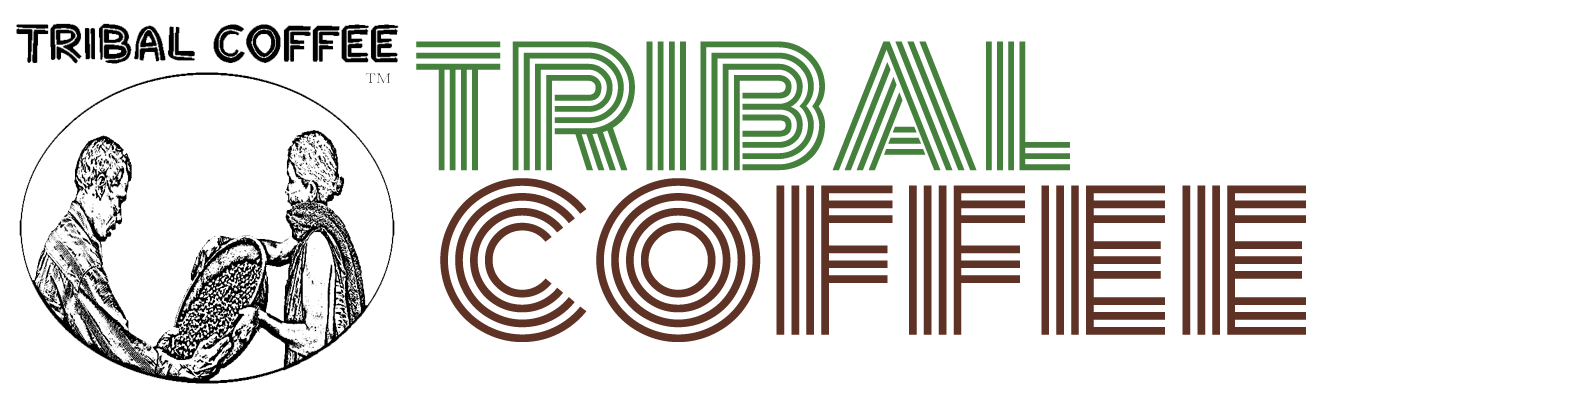 TRIBAL COFFEE